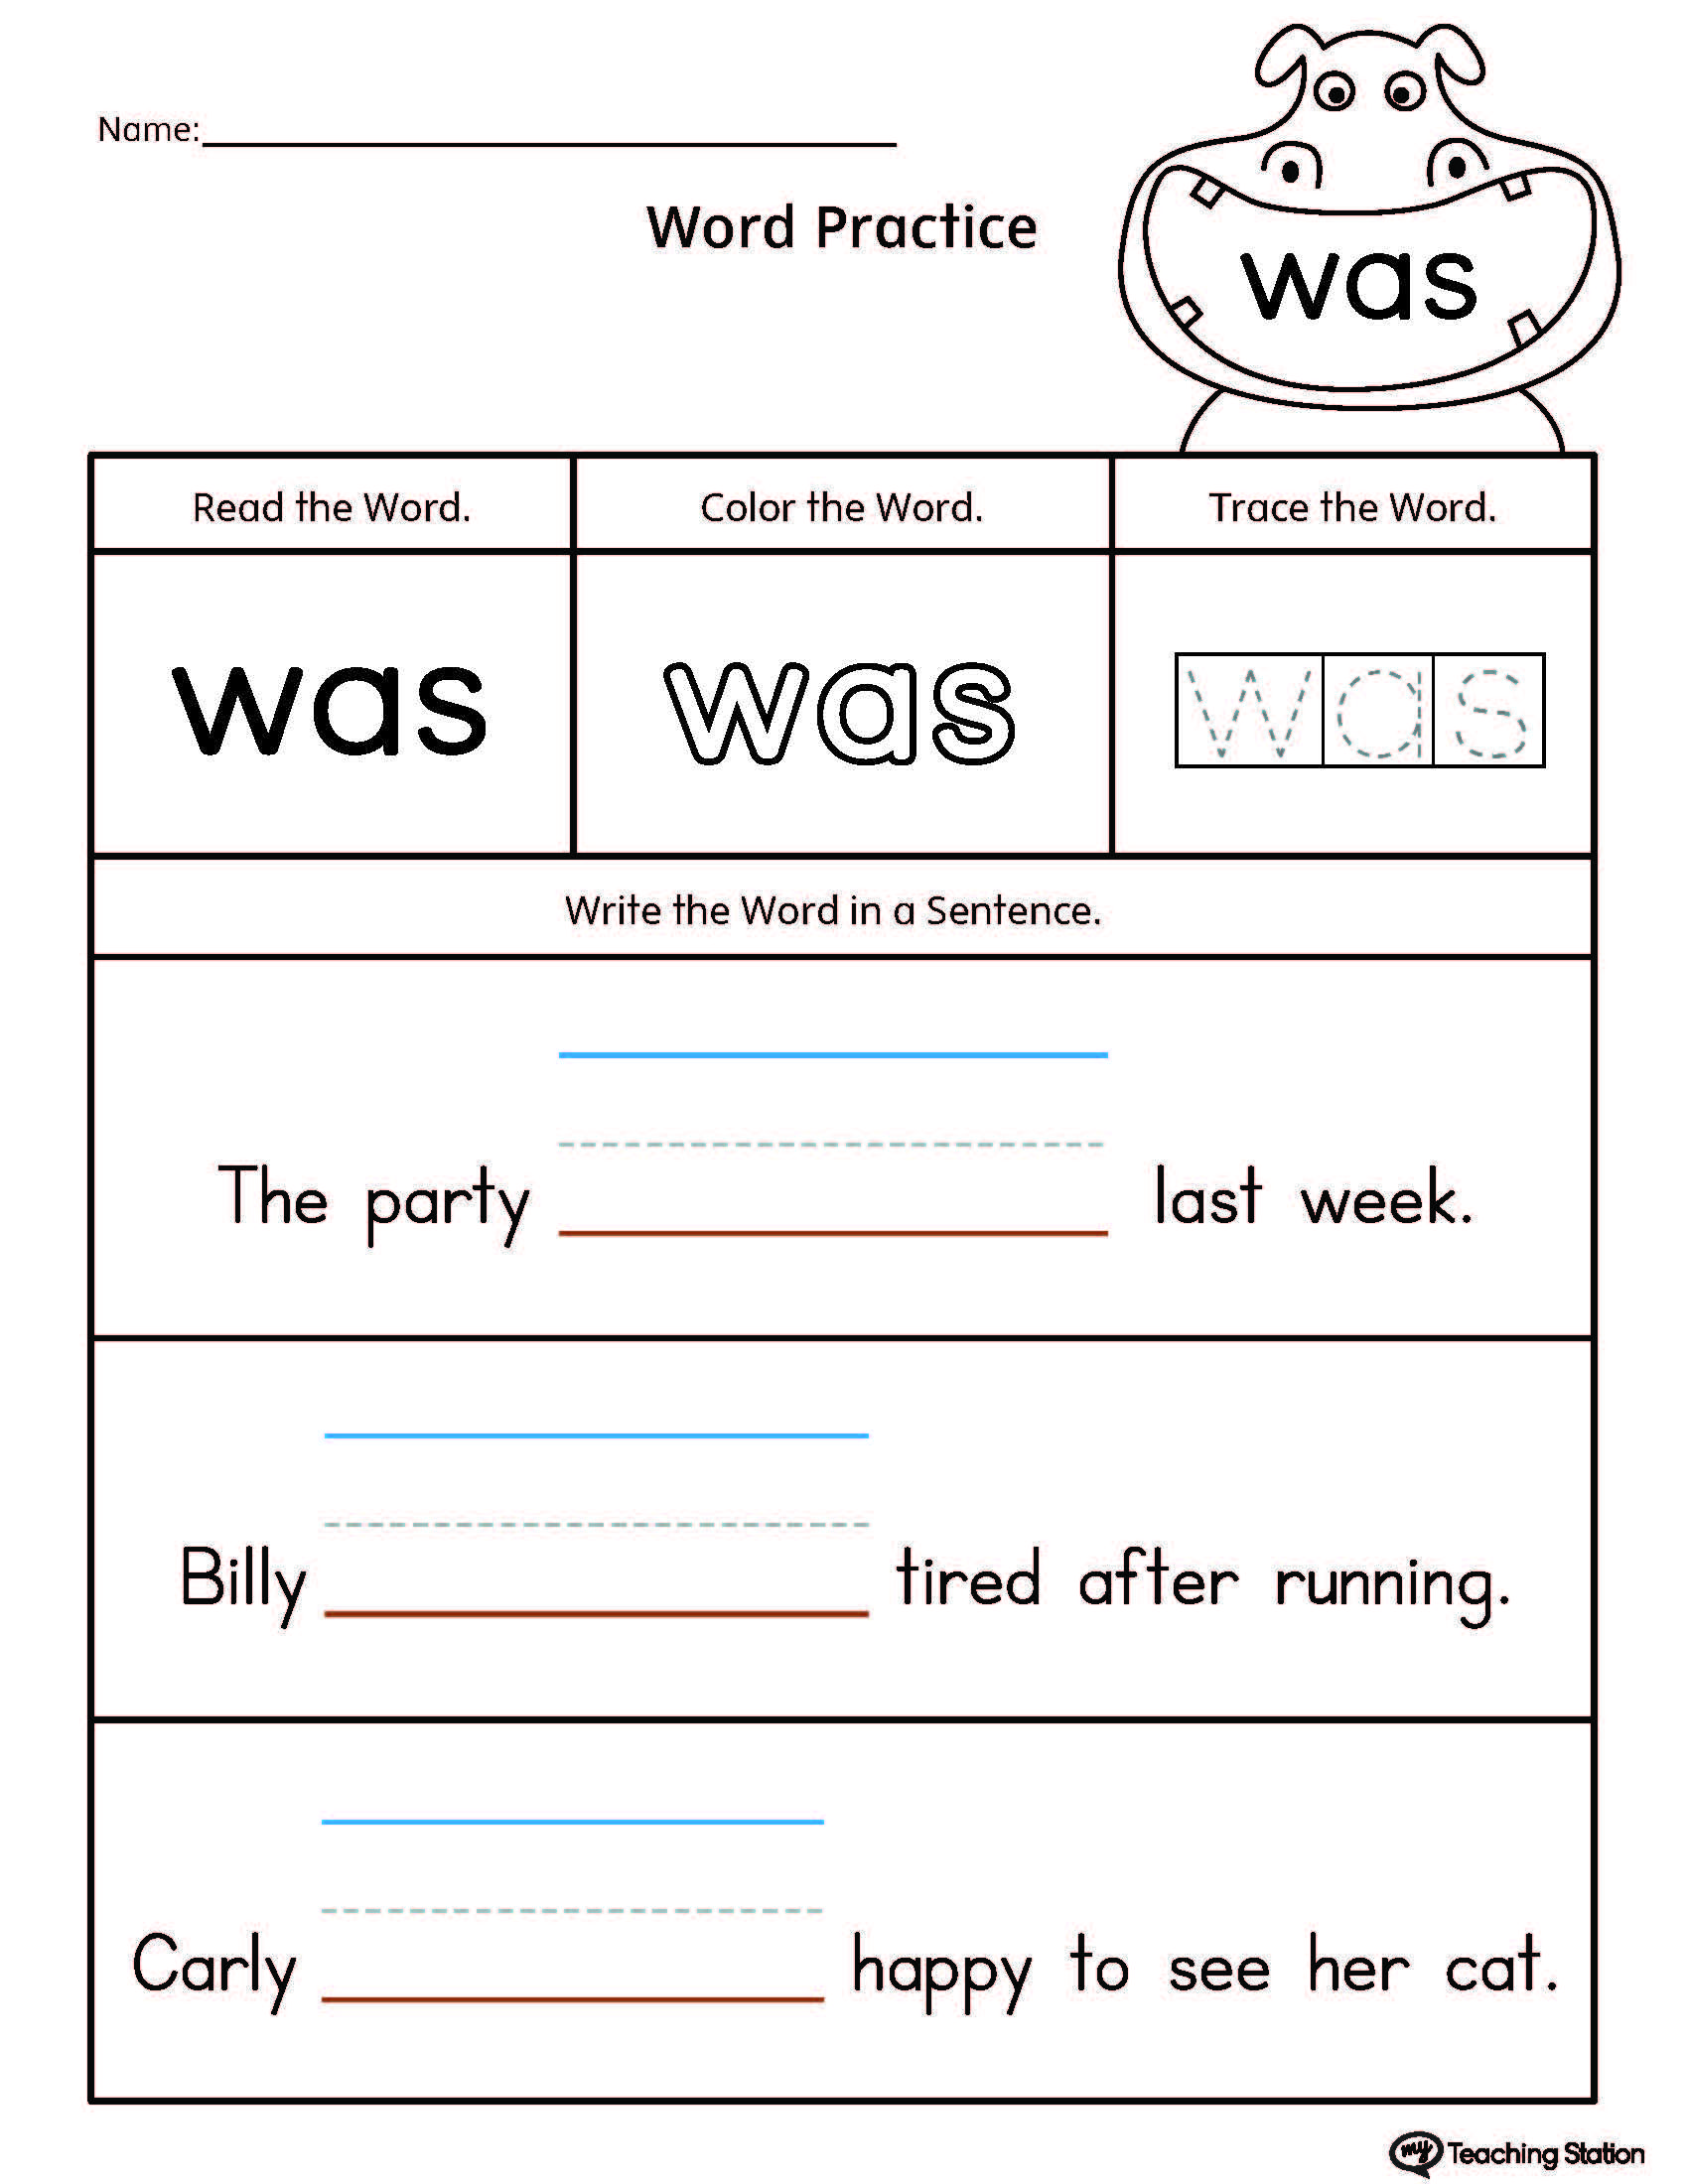 Build Sentences Using Sight Word: WAS